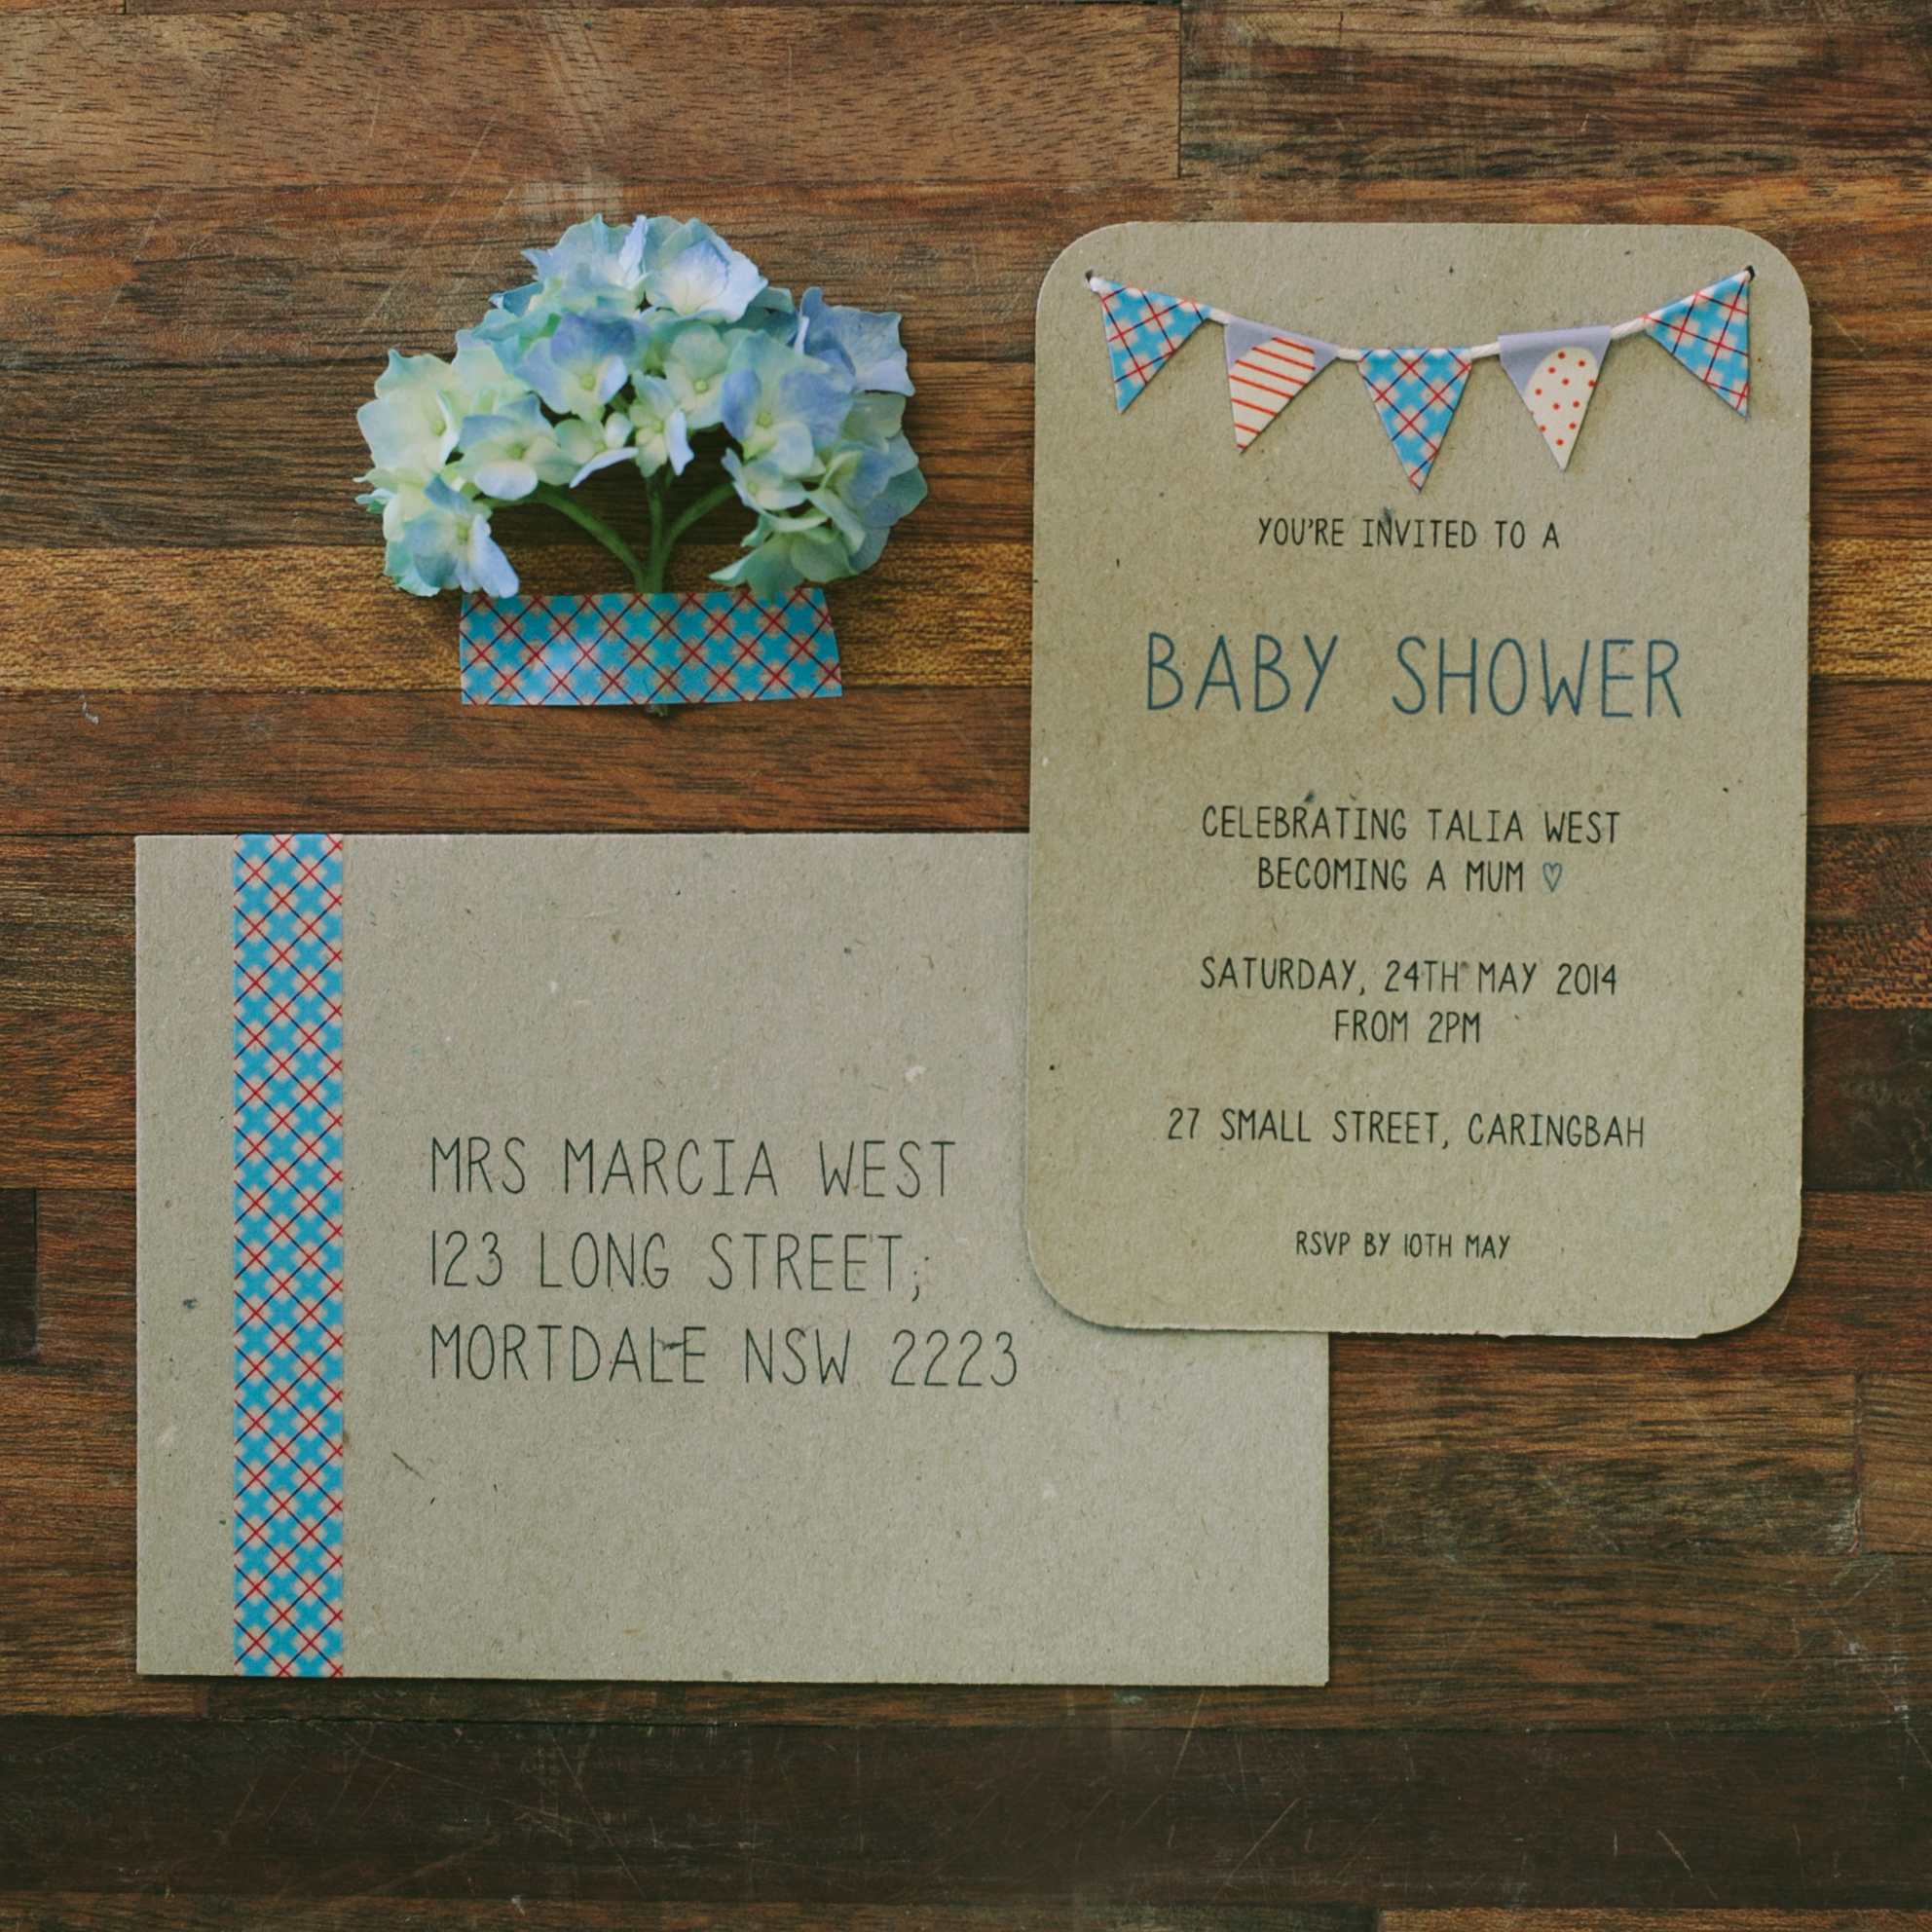 Baby Shower - flatlay.jpg